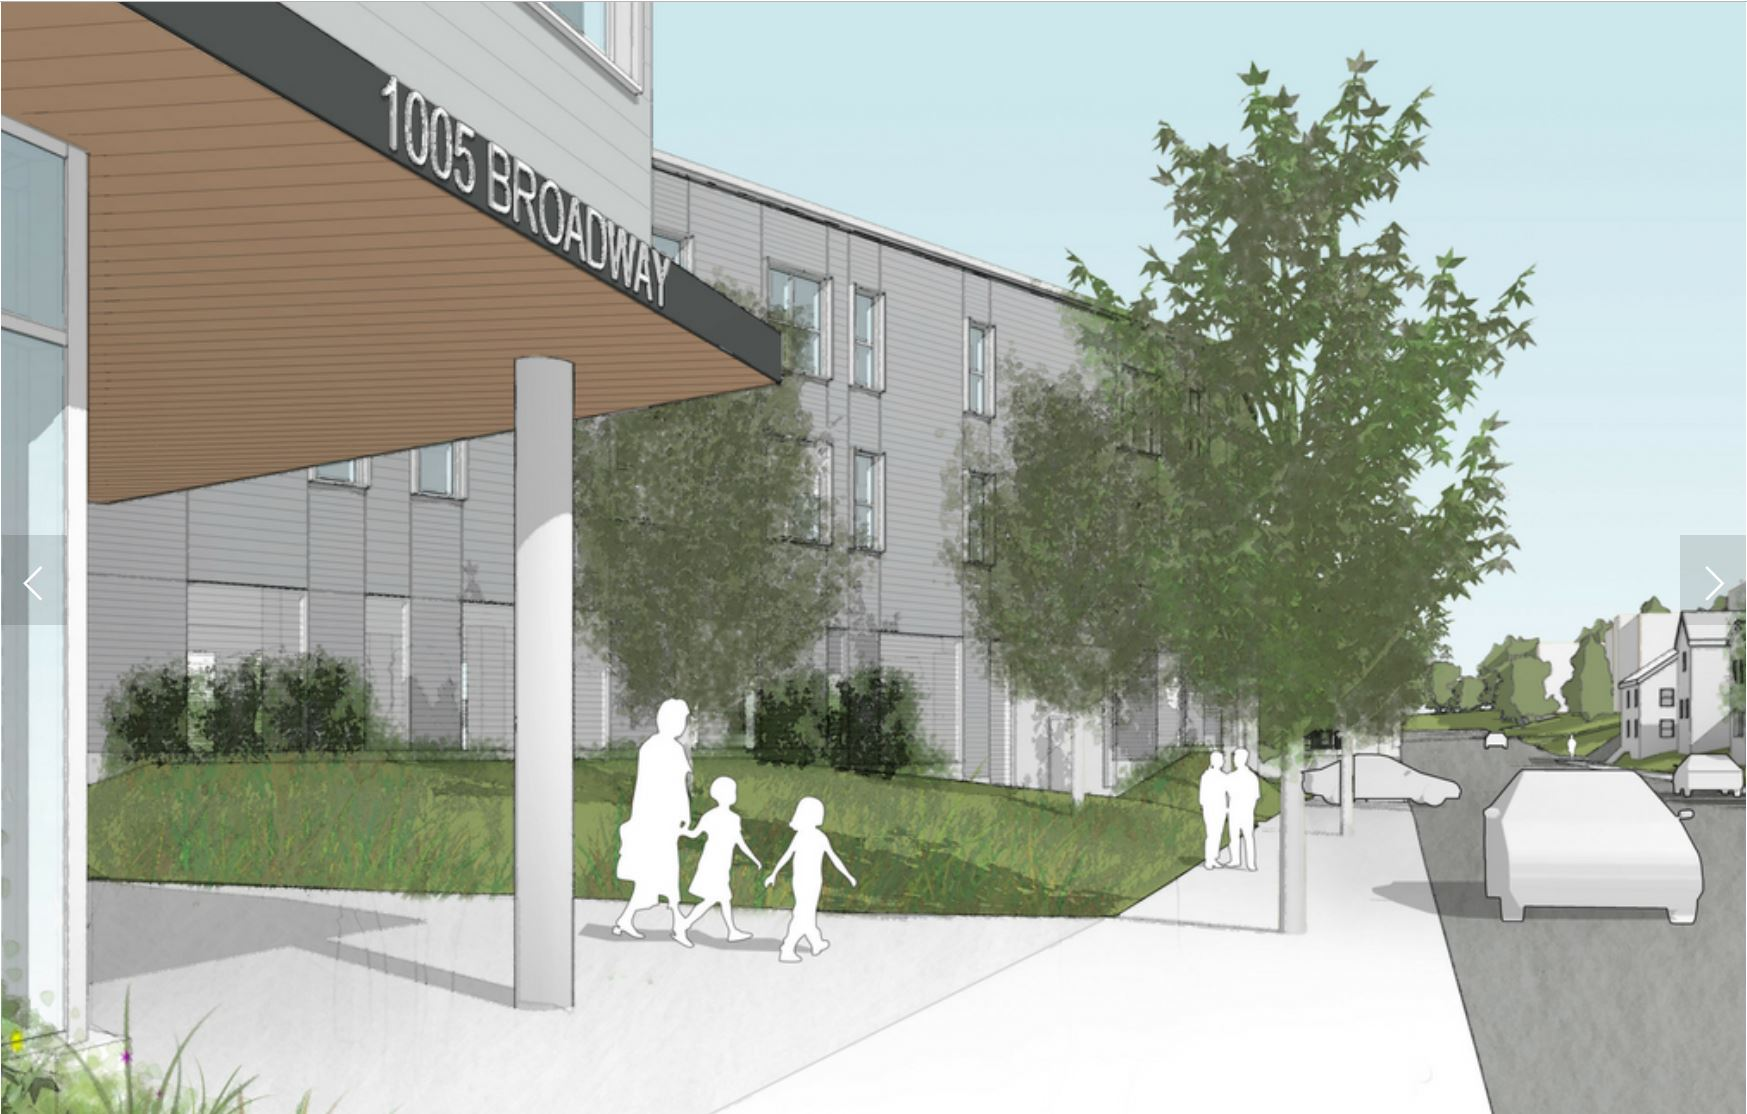 Rendering of the entrance to 1005 Broadway, Chelsea